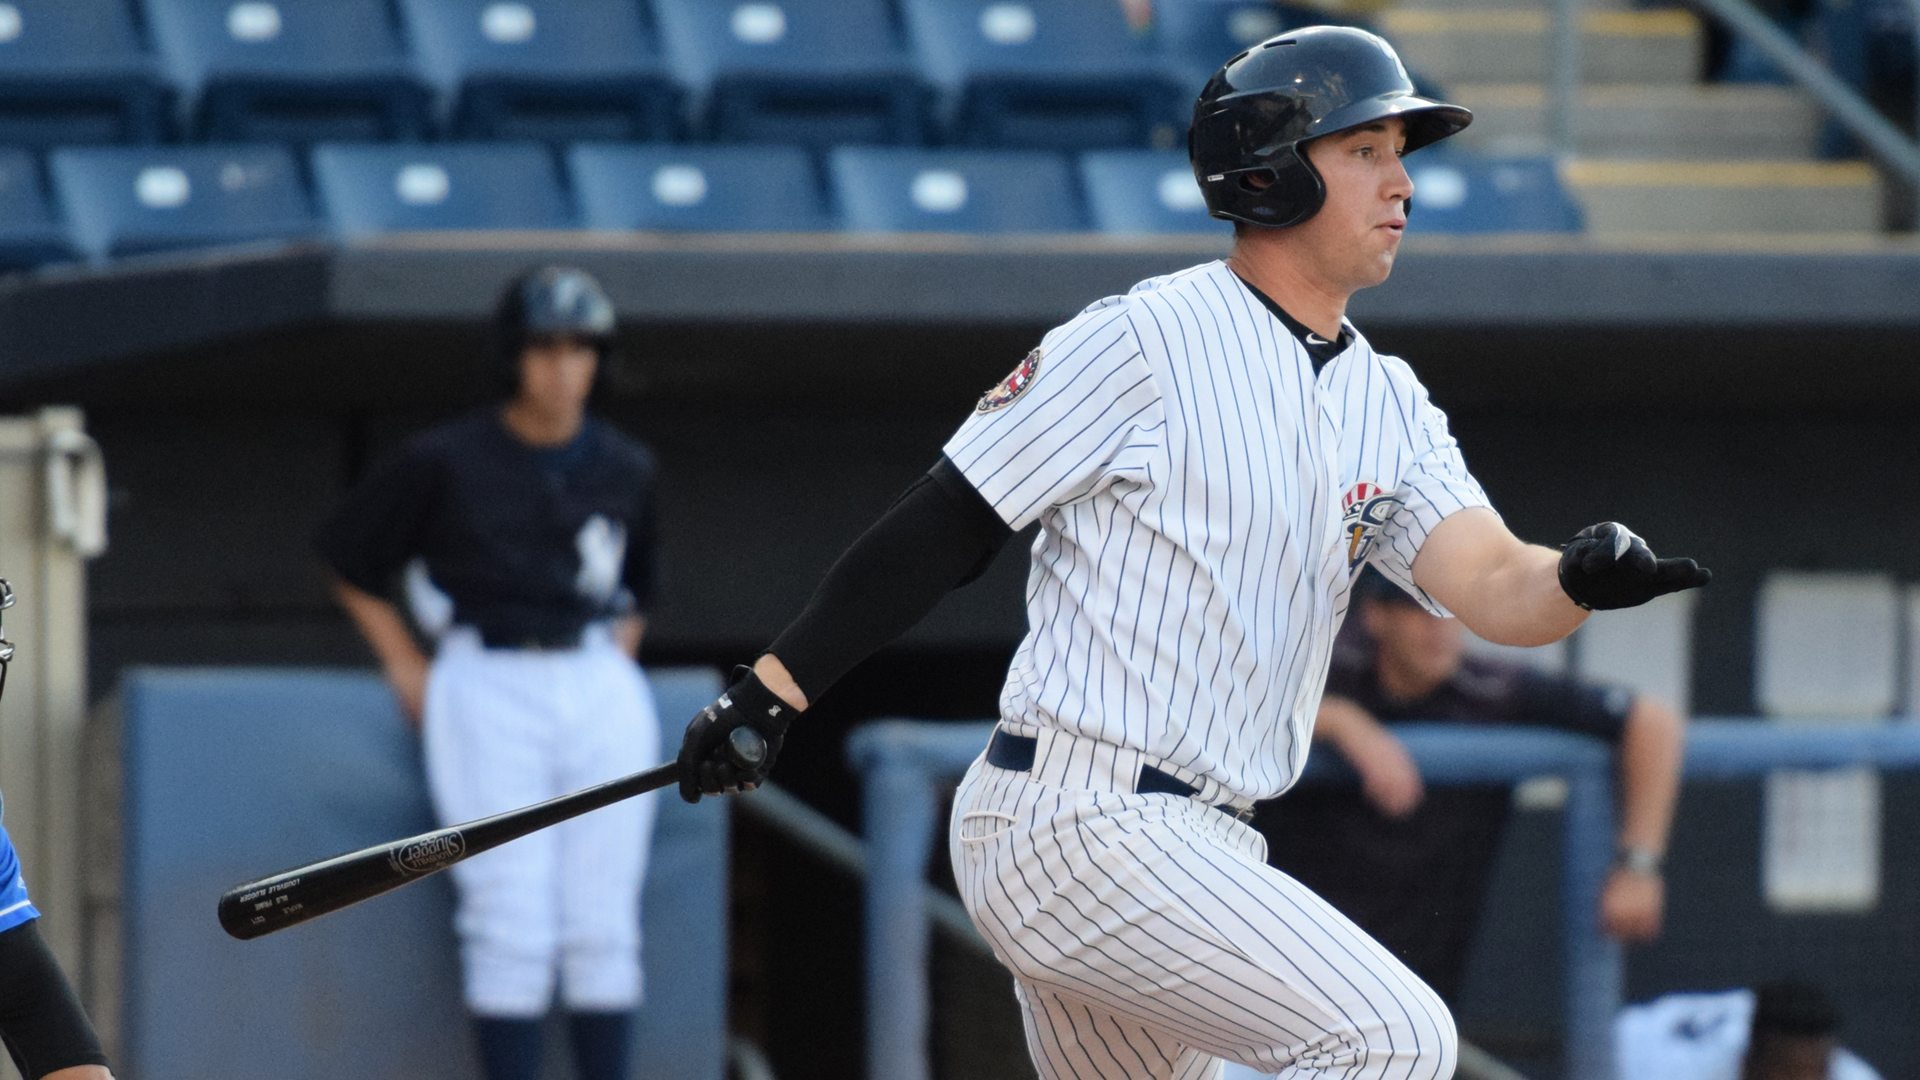 Staten Island Yankees first baseman Drew Bridges had 2-doubles in a 3-for-4 night at the plate against the Hudson Valley Renegades on June 29, 2016. (Robert M. Pimpsner/RMP Sports Media, Inc.)